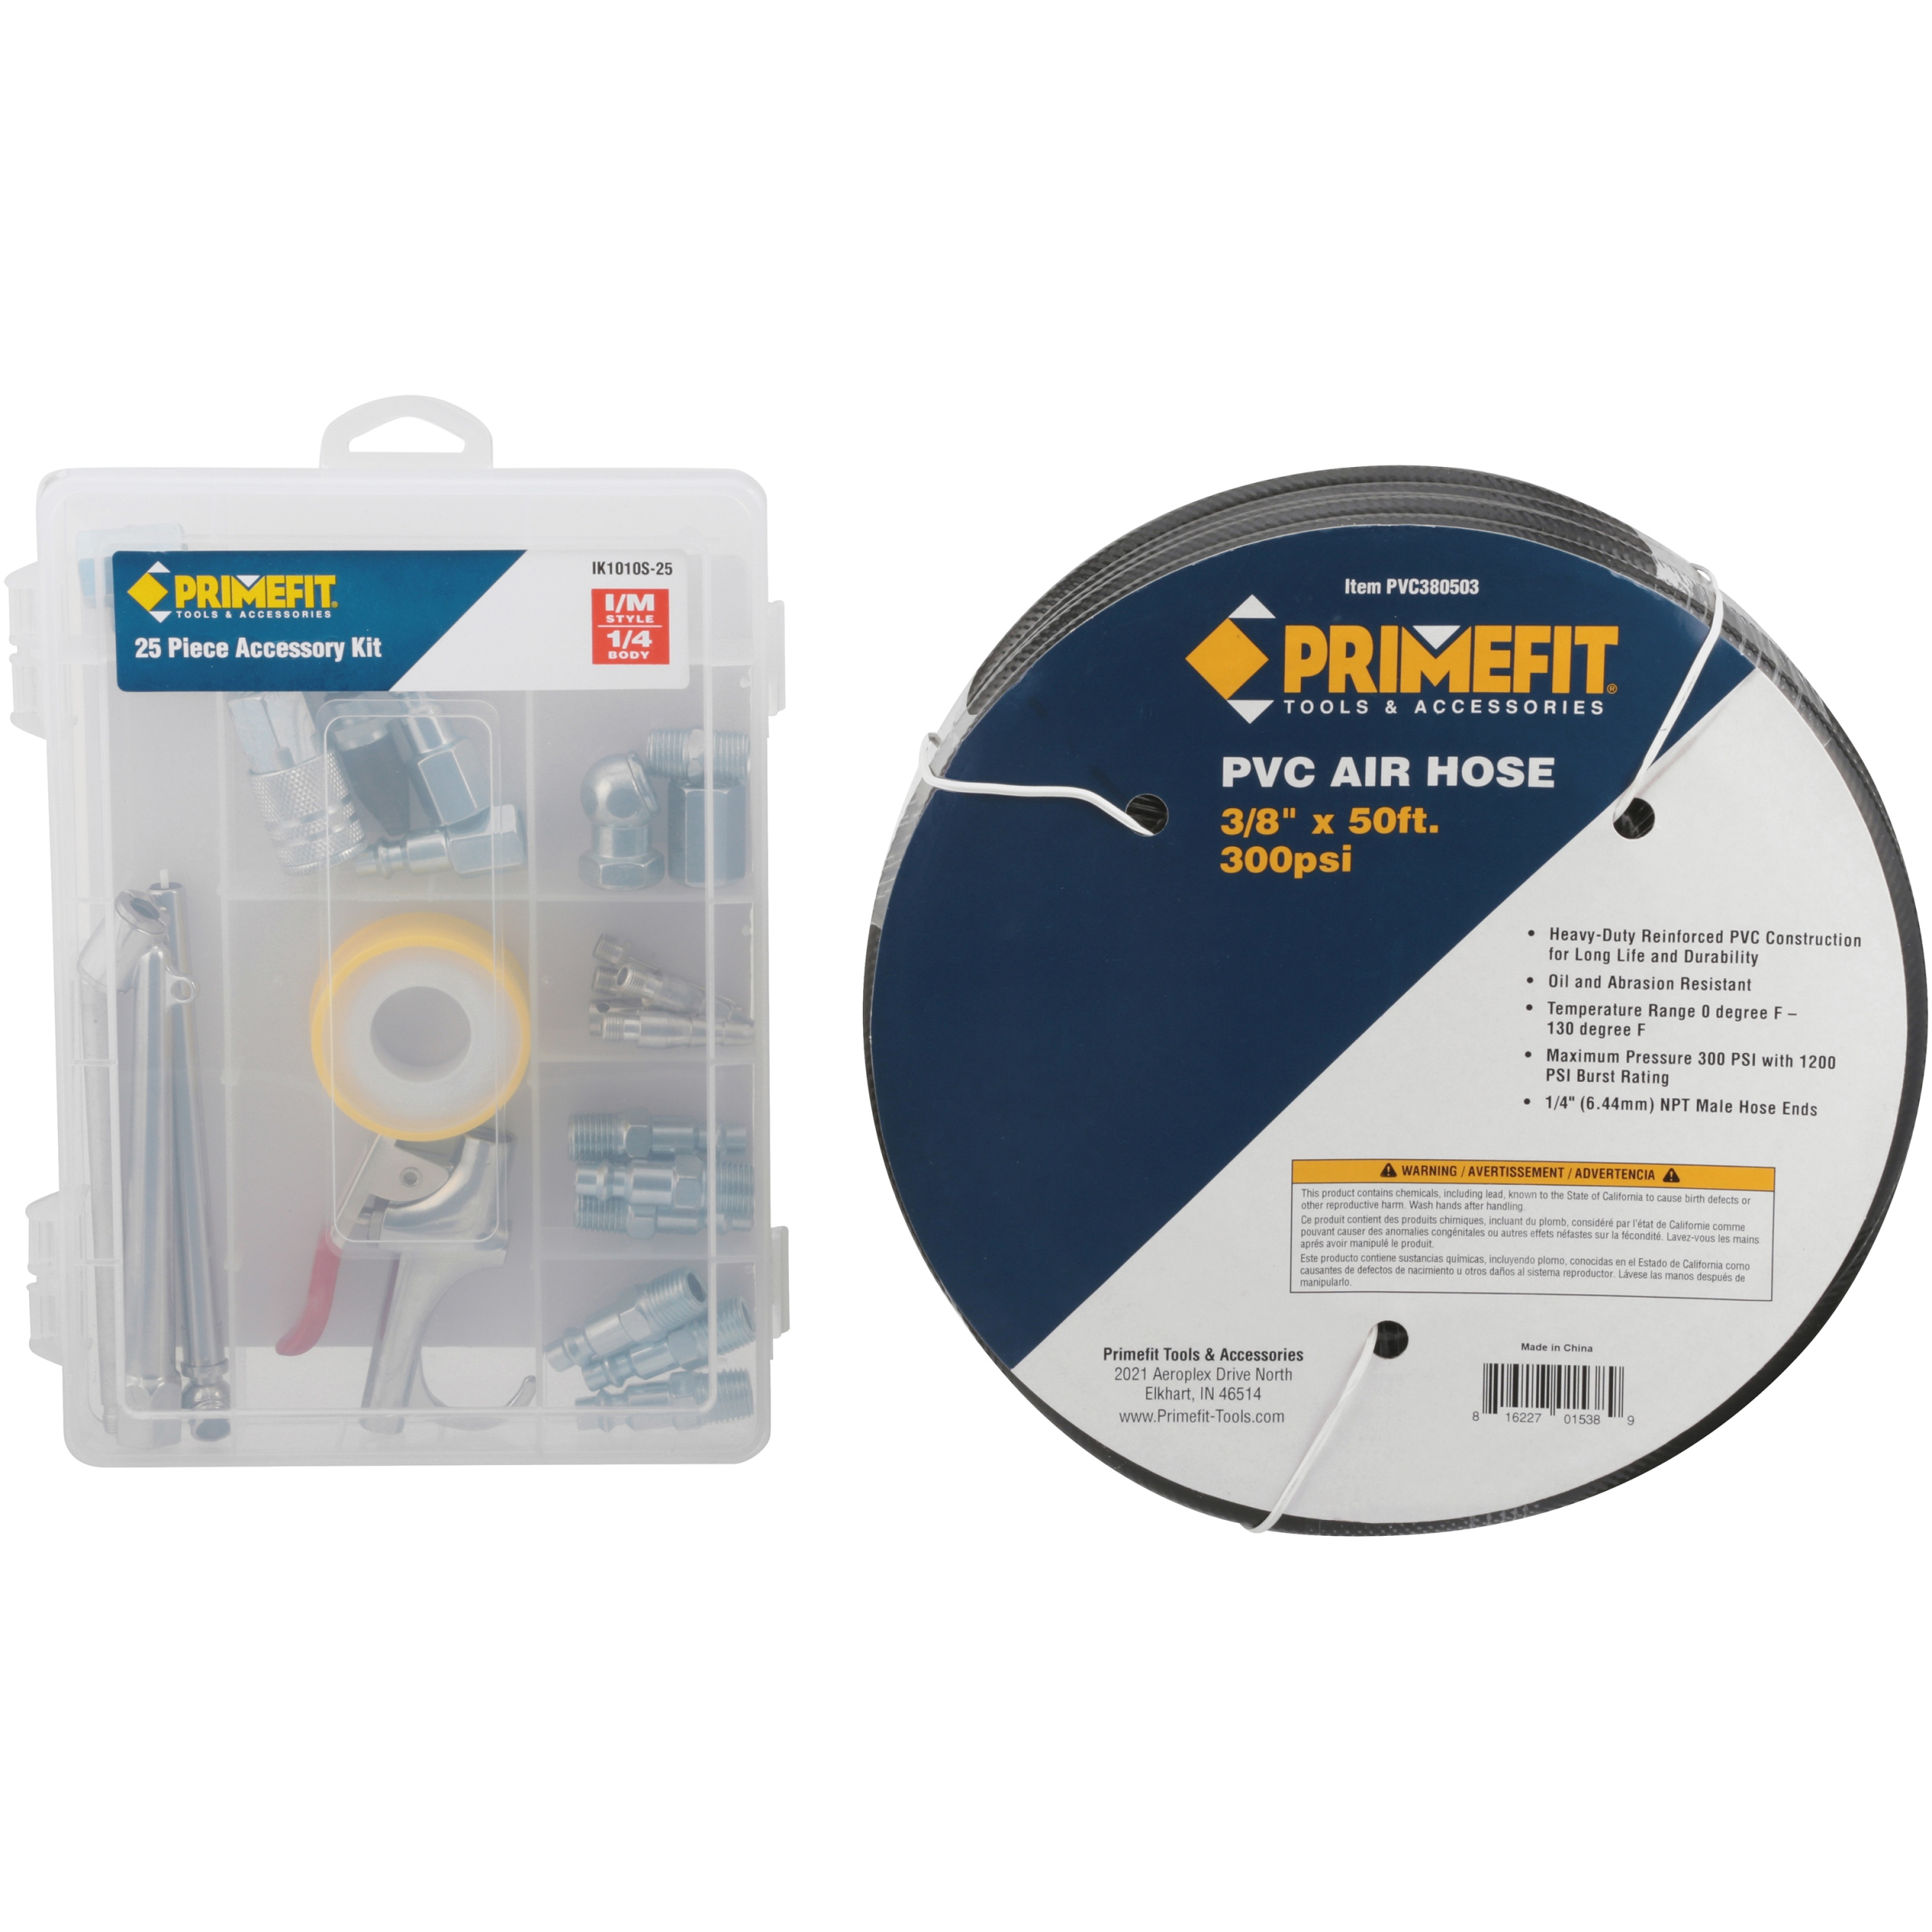 Primefit® 50 ft. Air Hose with Accessory Kit 26 pc Box